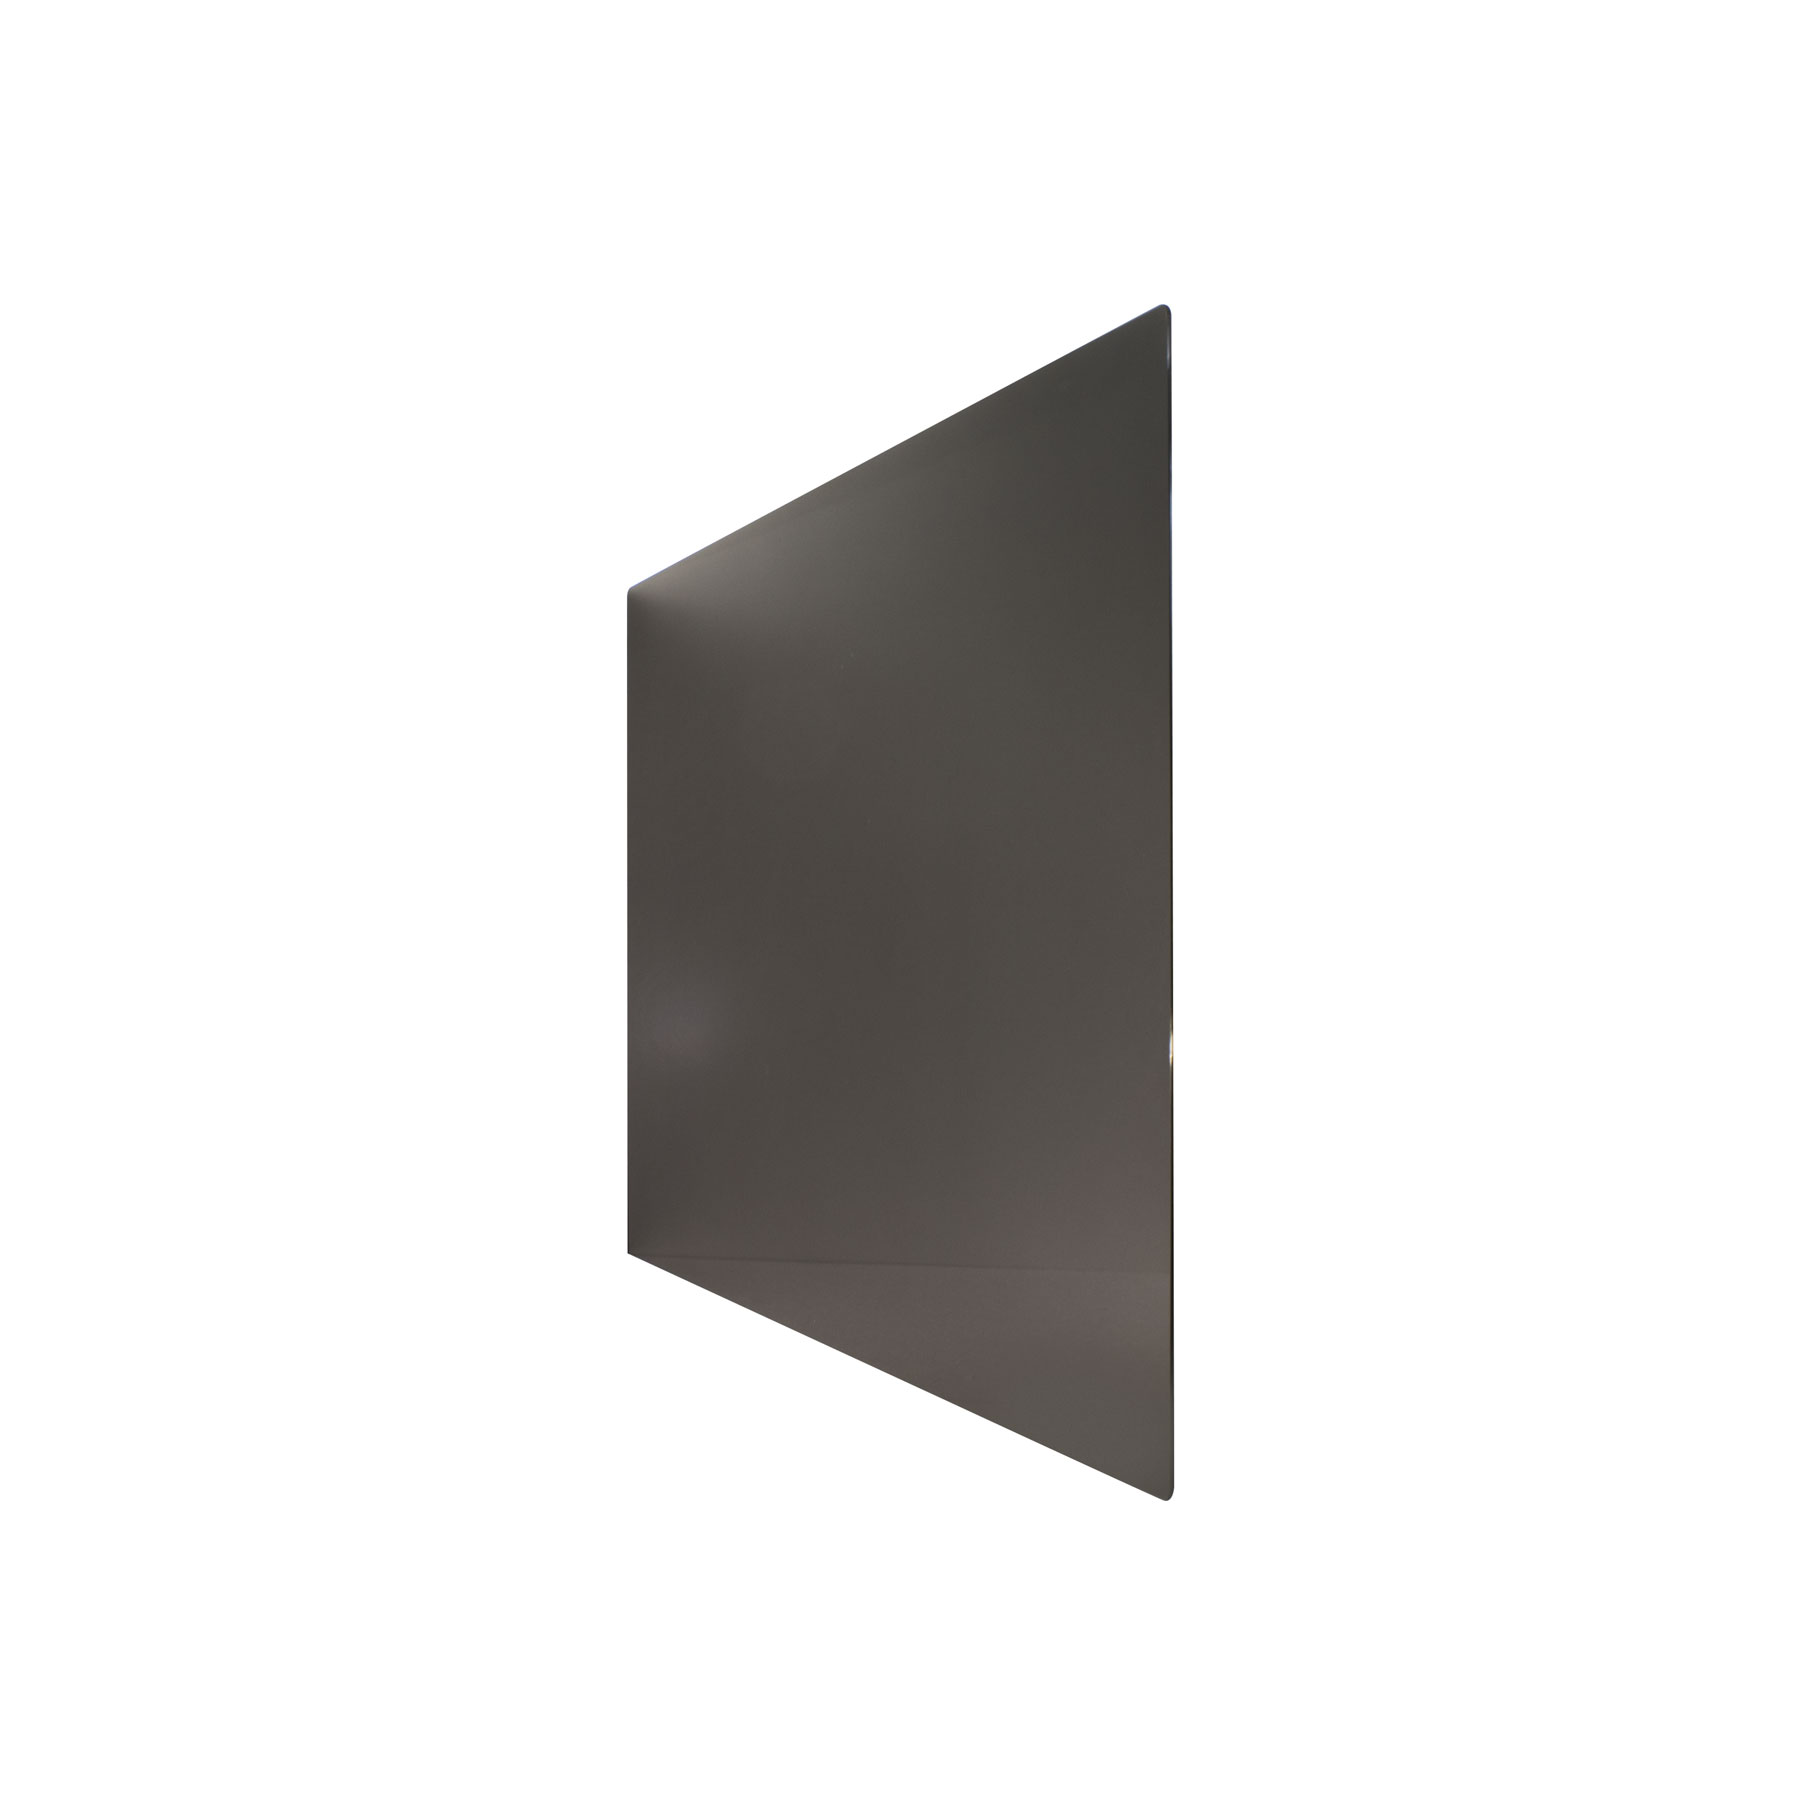 Technotherm Design Glass - Black 690mm